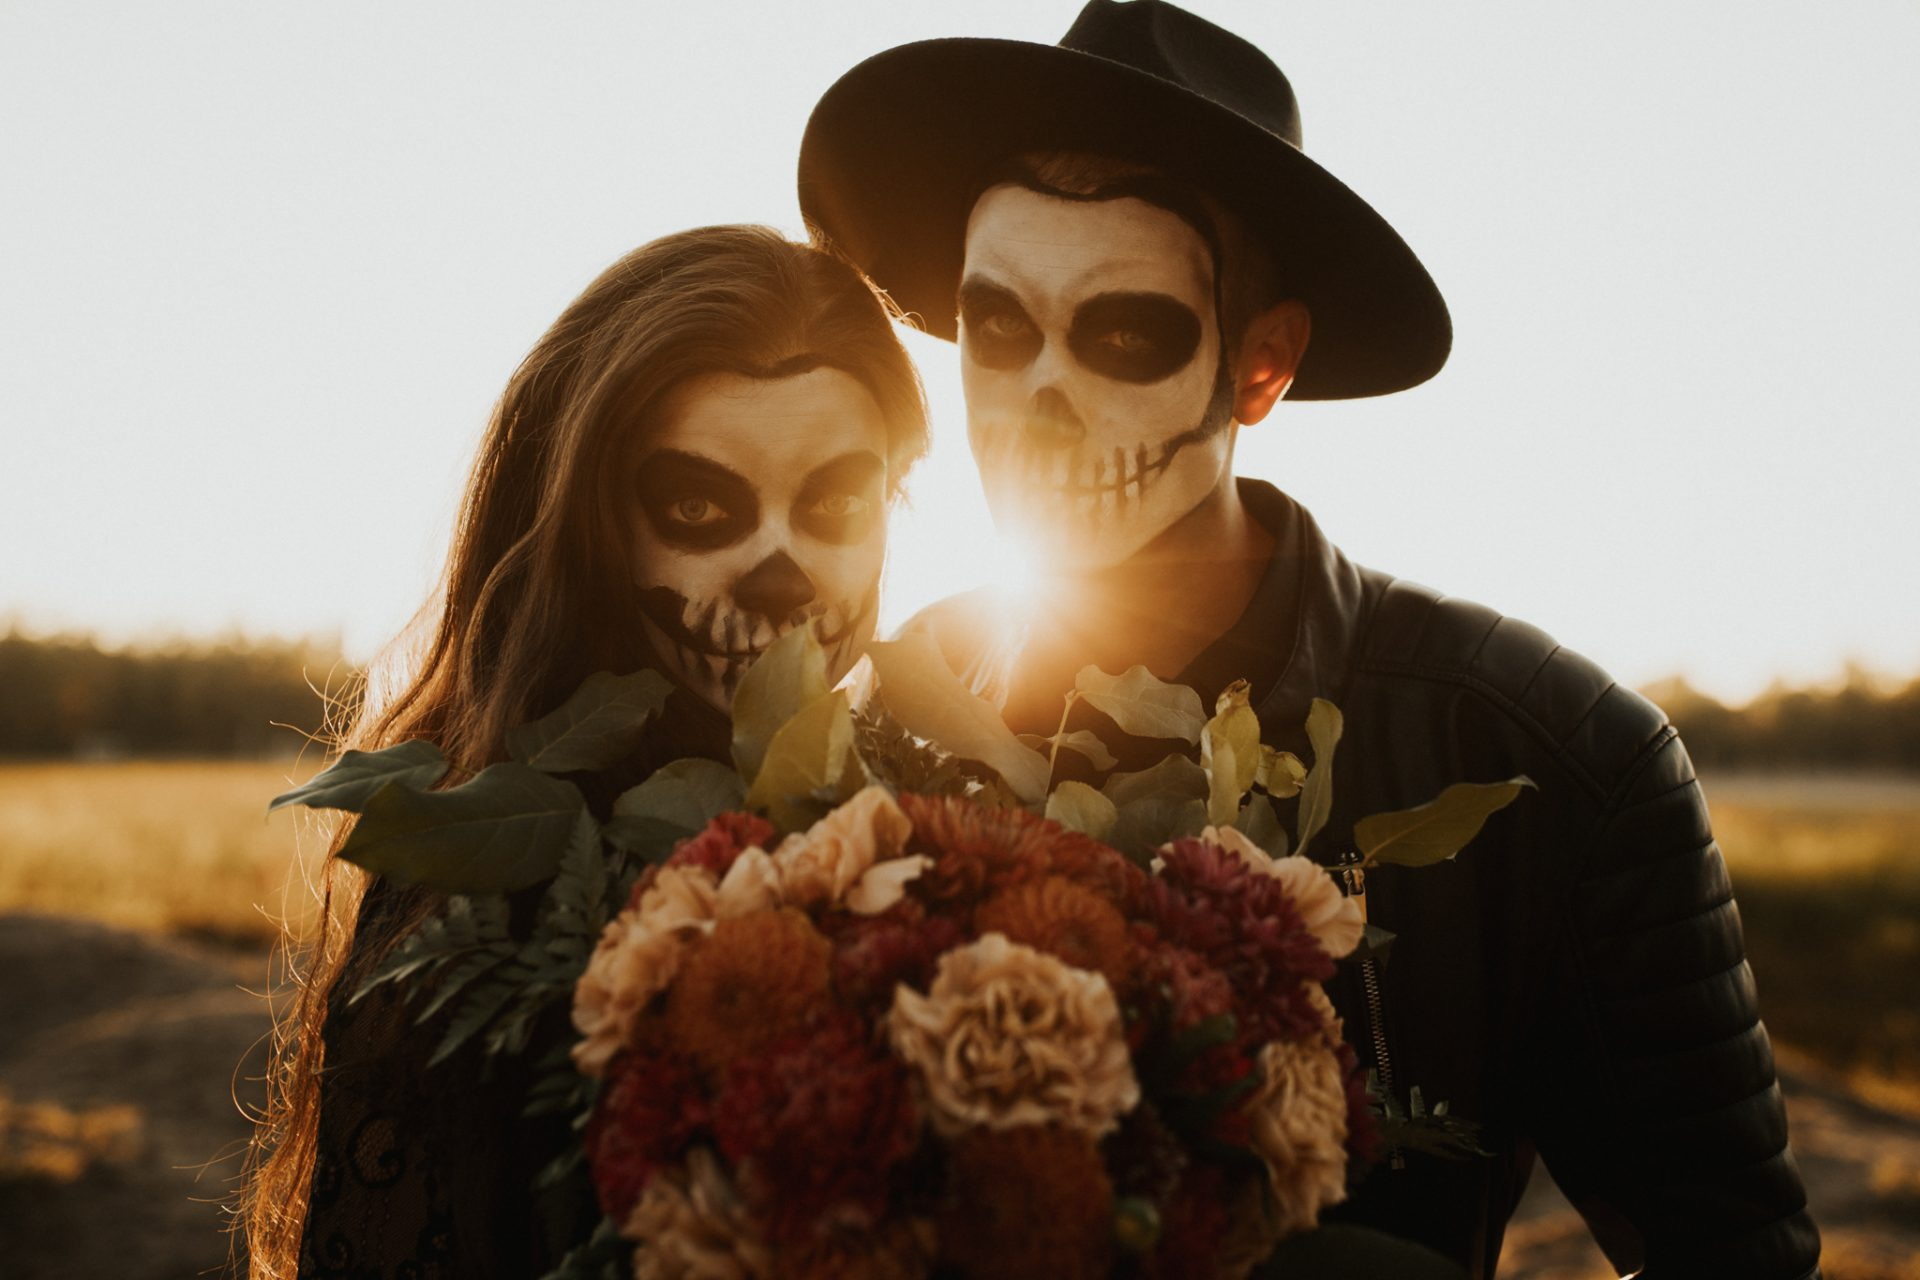 halloween styled couples shoot with skeleton makeup